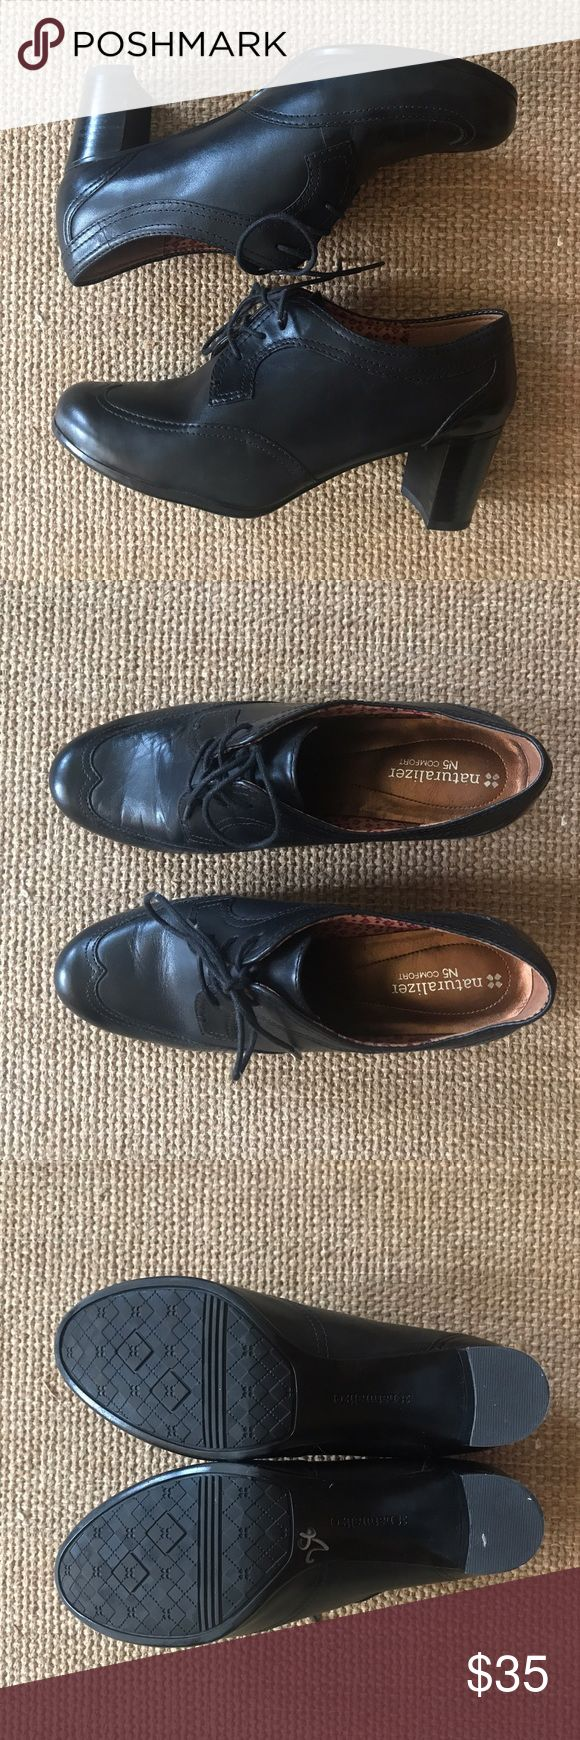 Women's Naturalizer Oxford With Heel Gently Used, No Fading, No Scuffs or Stains. Comes from a Pet-FREE & Smoke-FREE Home. Only worn once to a job interview. Naturalizer Shoes Heels